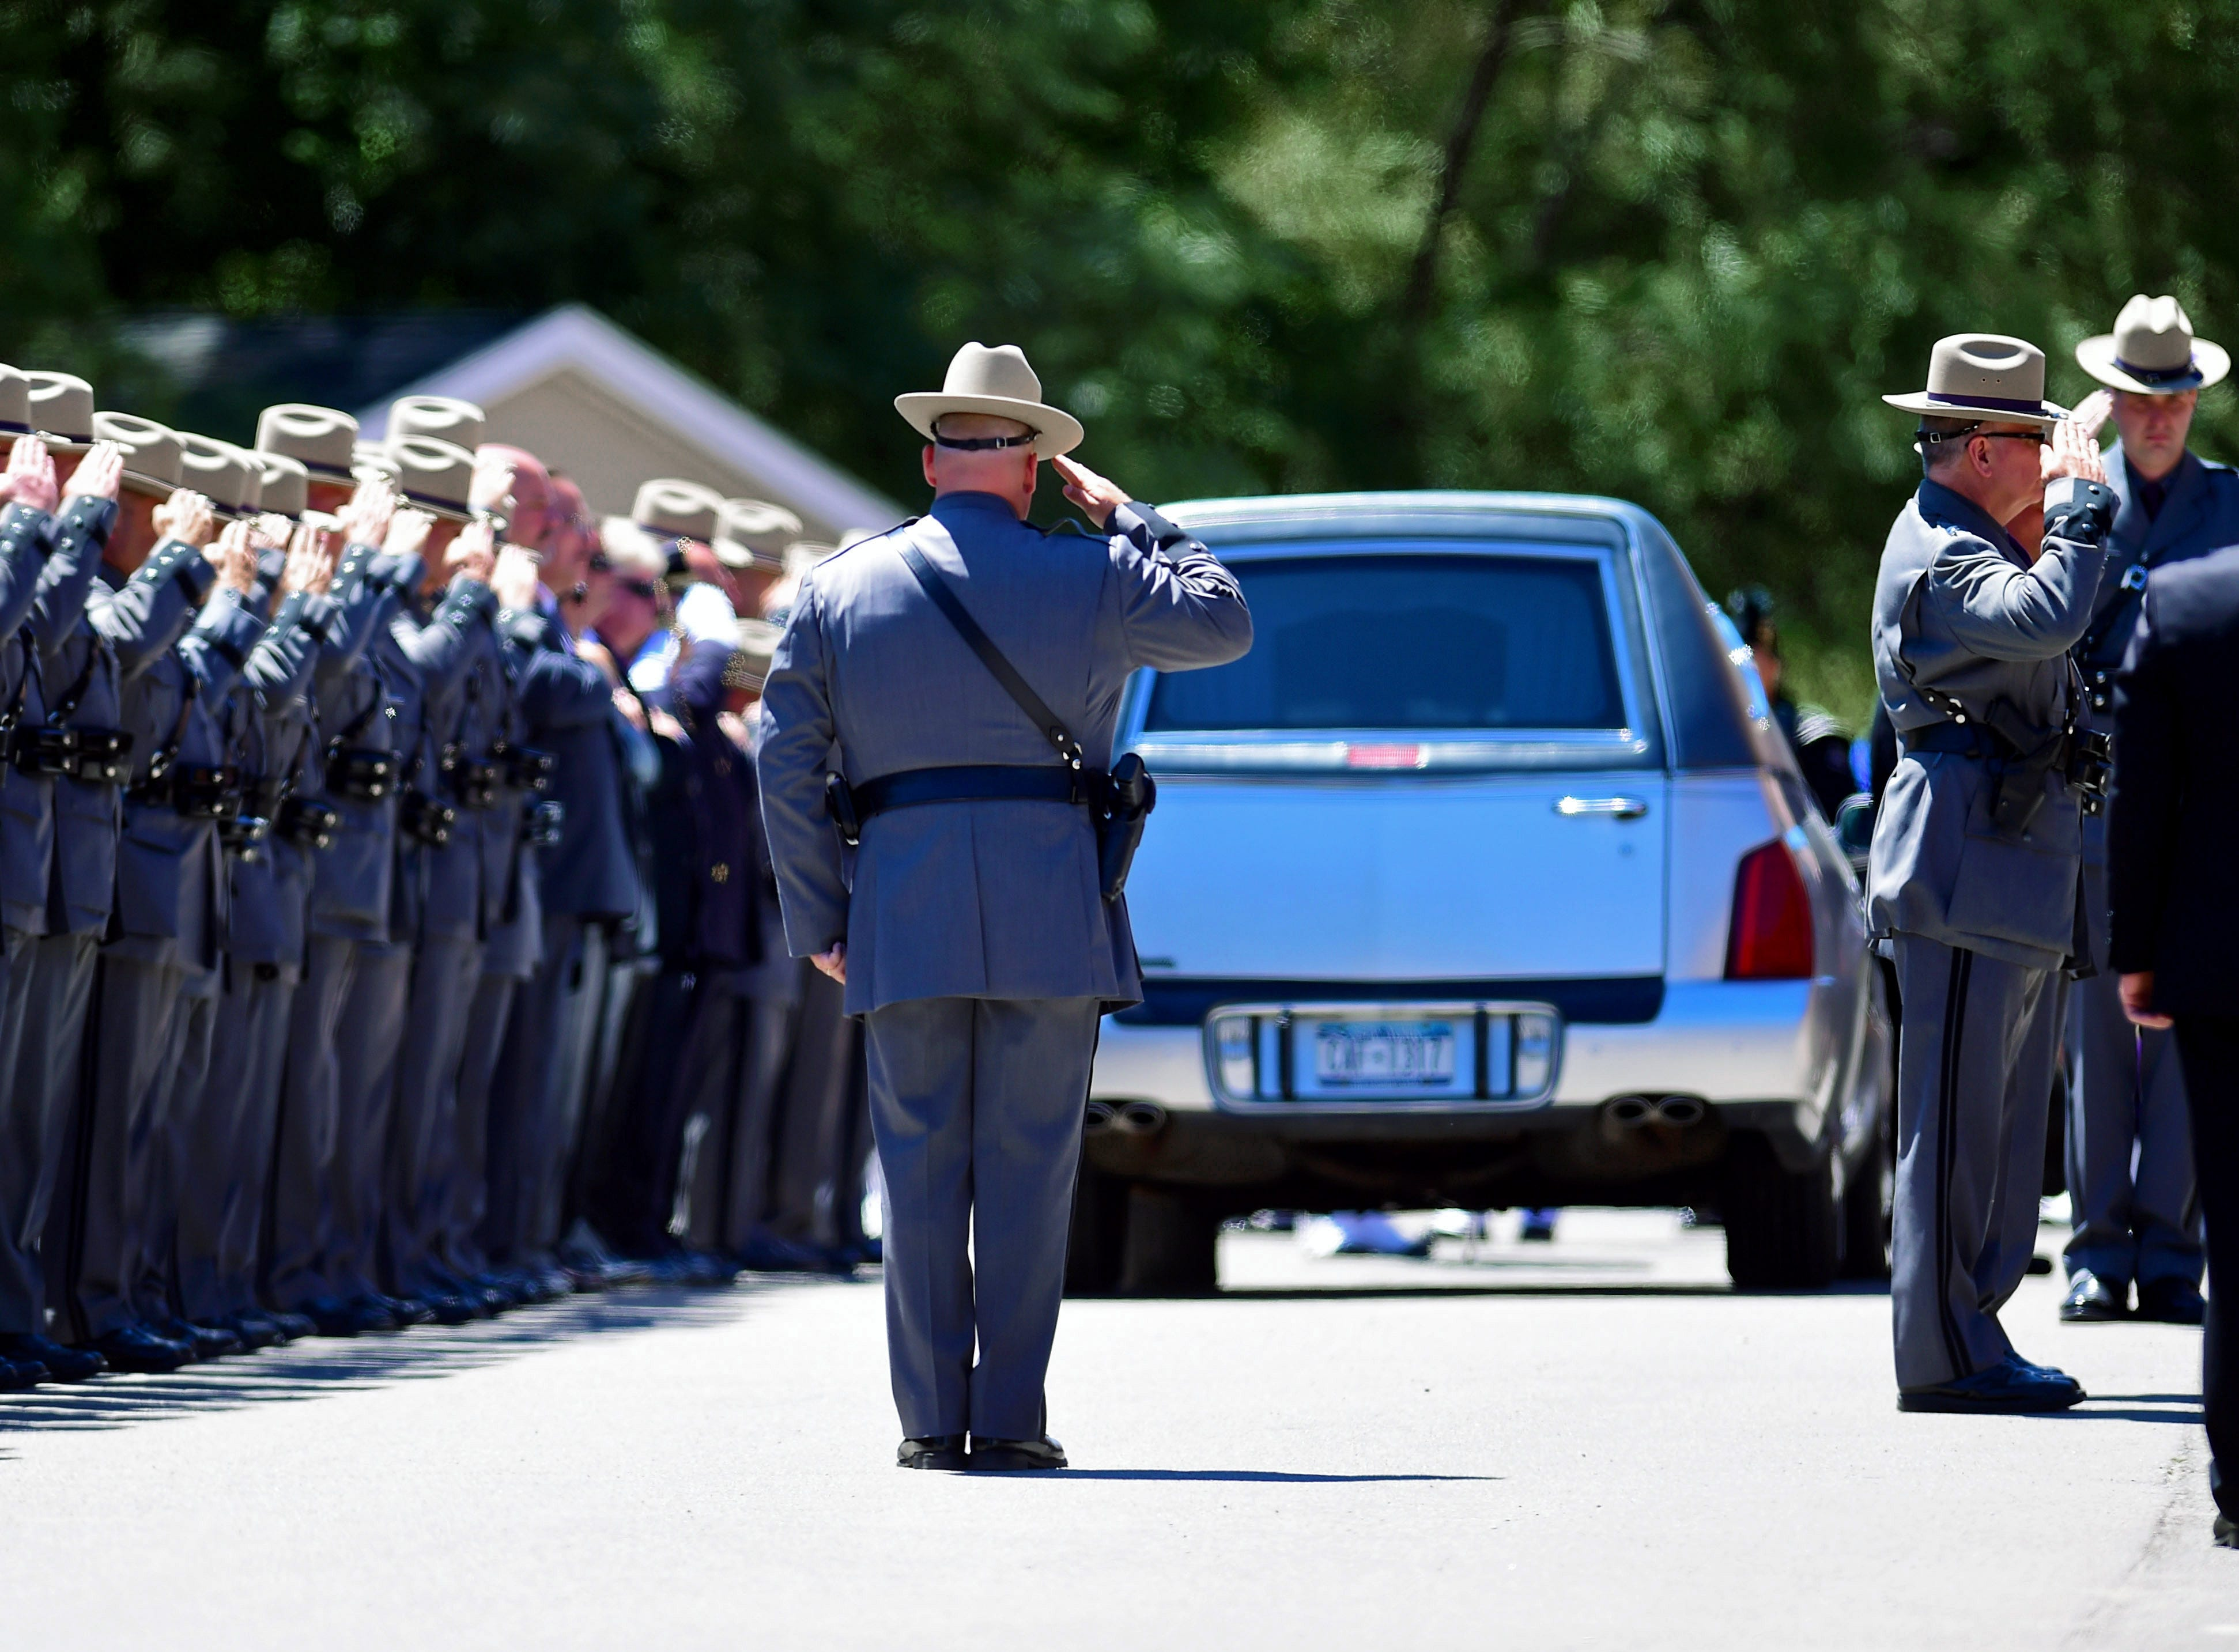 New York State Police Superintendent George P. Beach II salutes as the hearse carrying the remains of Trooper Nicholas F. Clark departs the slain trooper's funeral service at the James A. McLane Physical Education Center, Alfred University, Alfred, NY, on July 8, 2018.